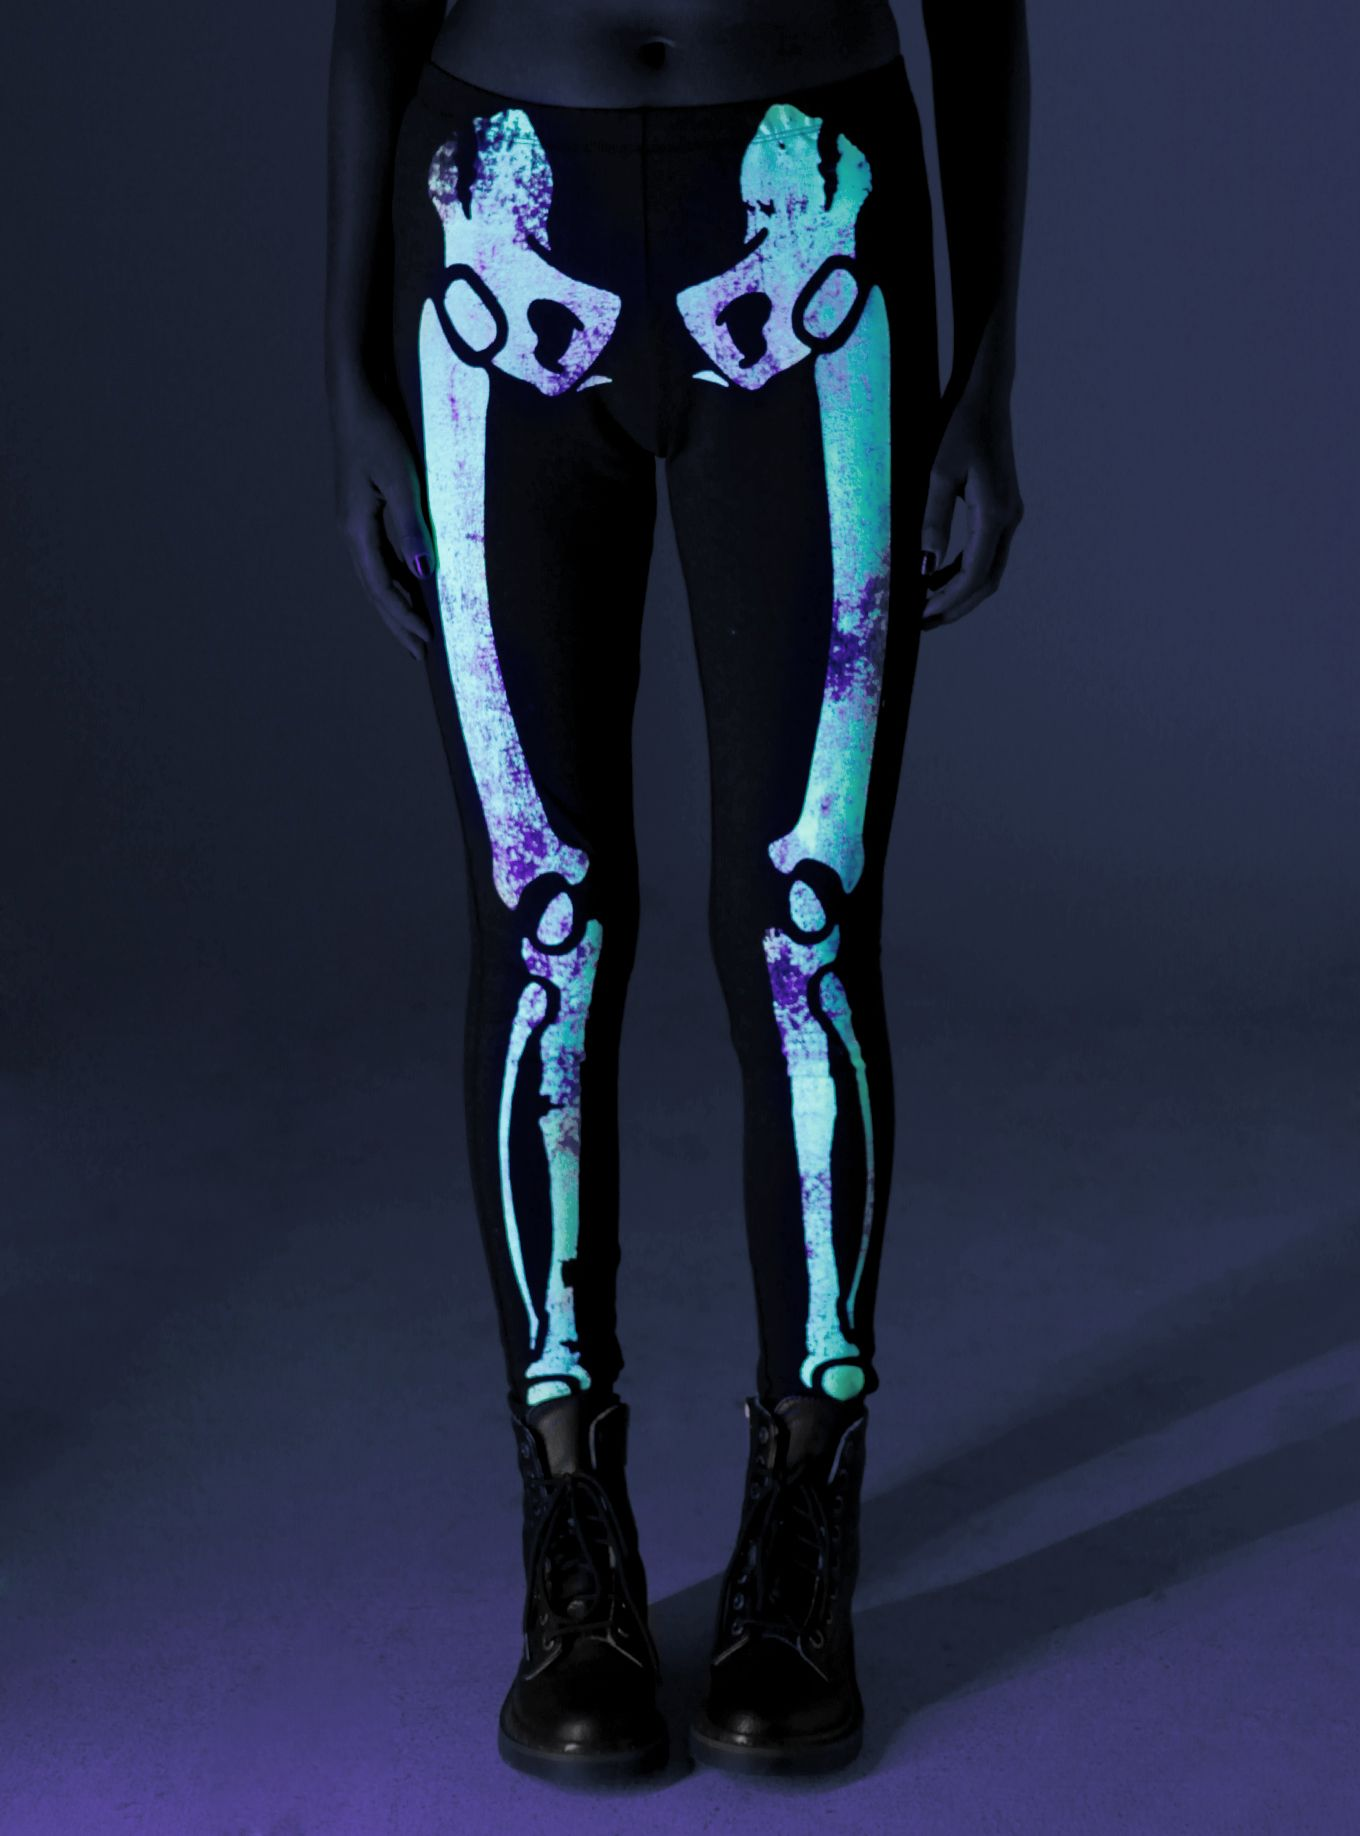 b7074c3c46c Skeleton Glow-In-The-Dark Leggings